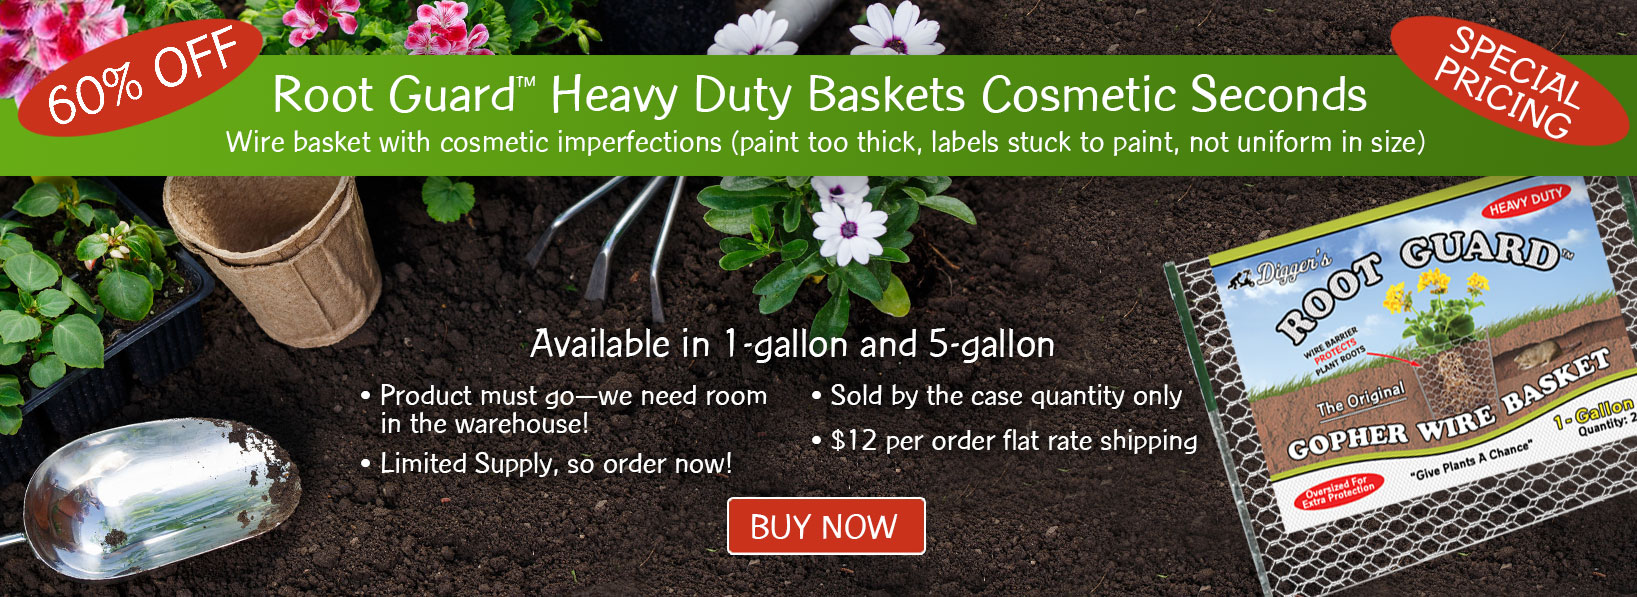 Root Guard Heavy Duty Baskets Cosmetic Seconds